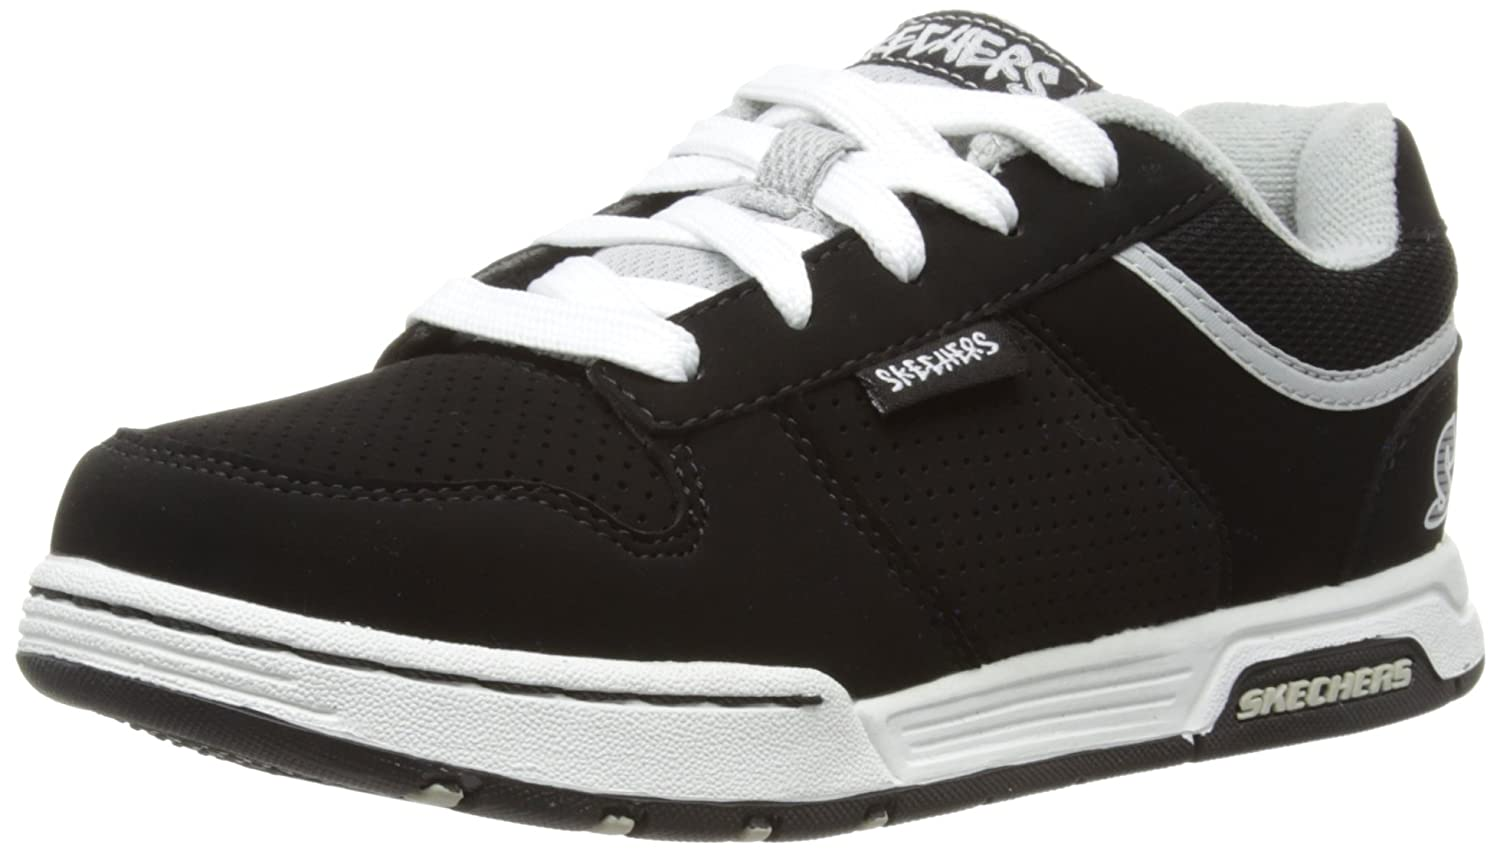 Skechers Endorse - Skate Game, Boys' Trainers 39.5 EU 998058L